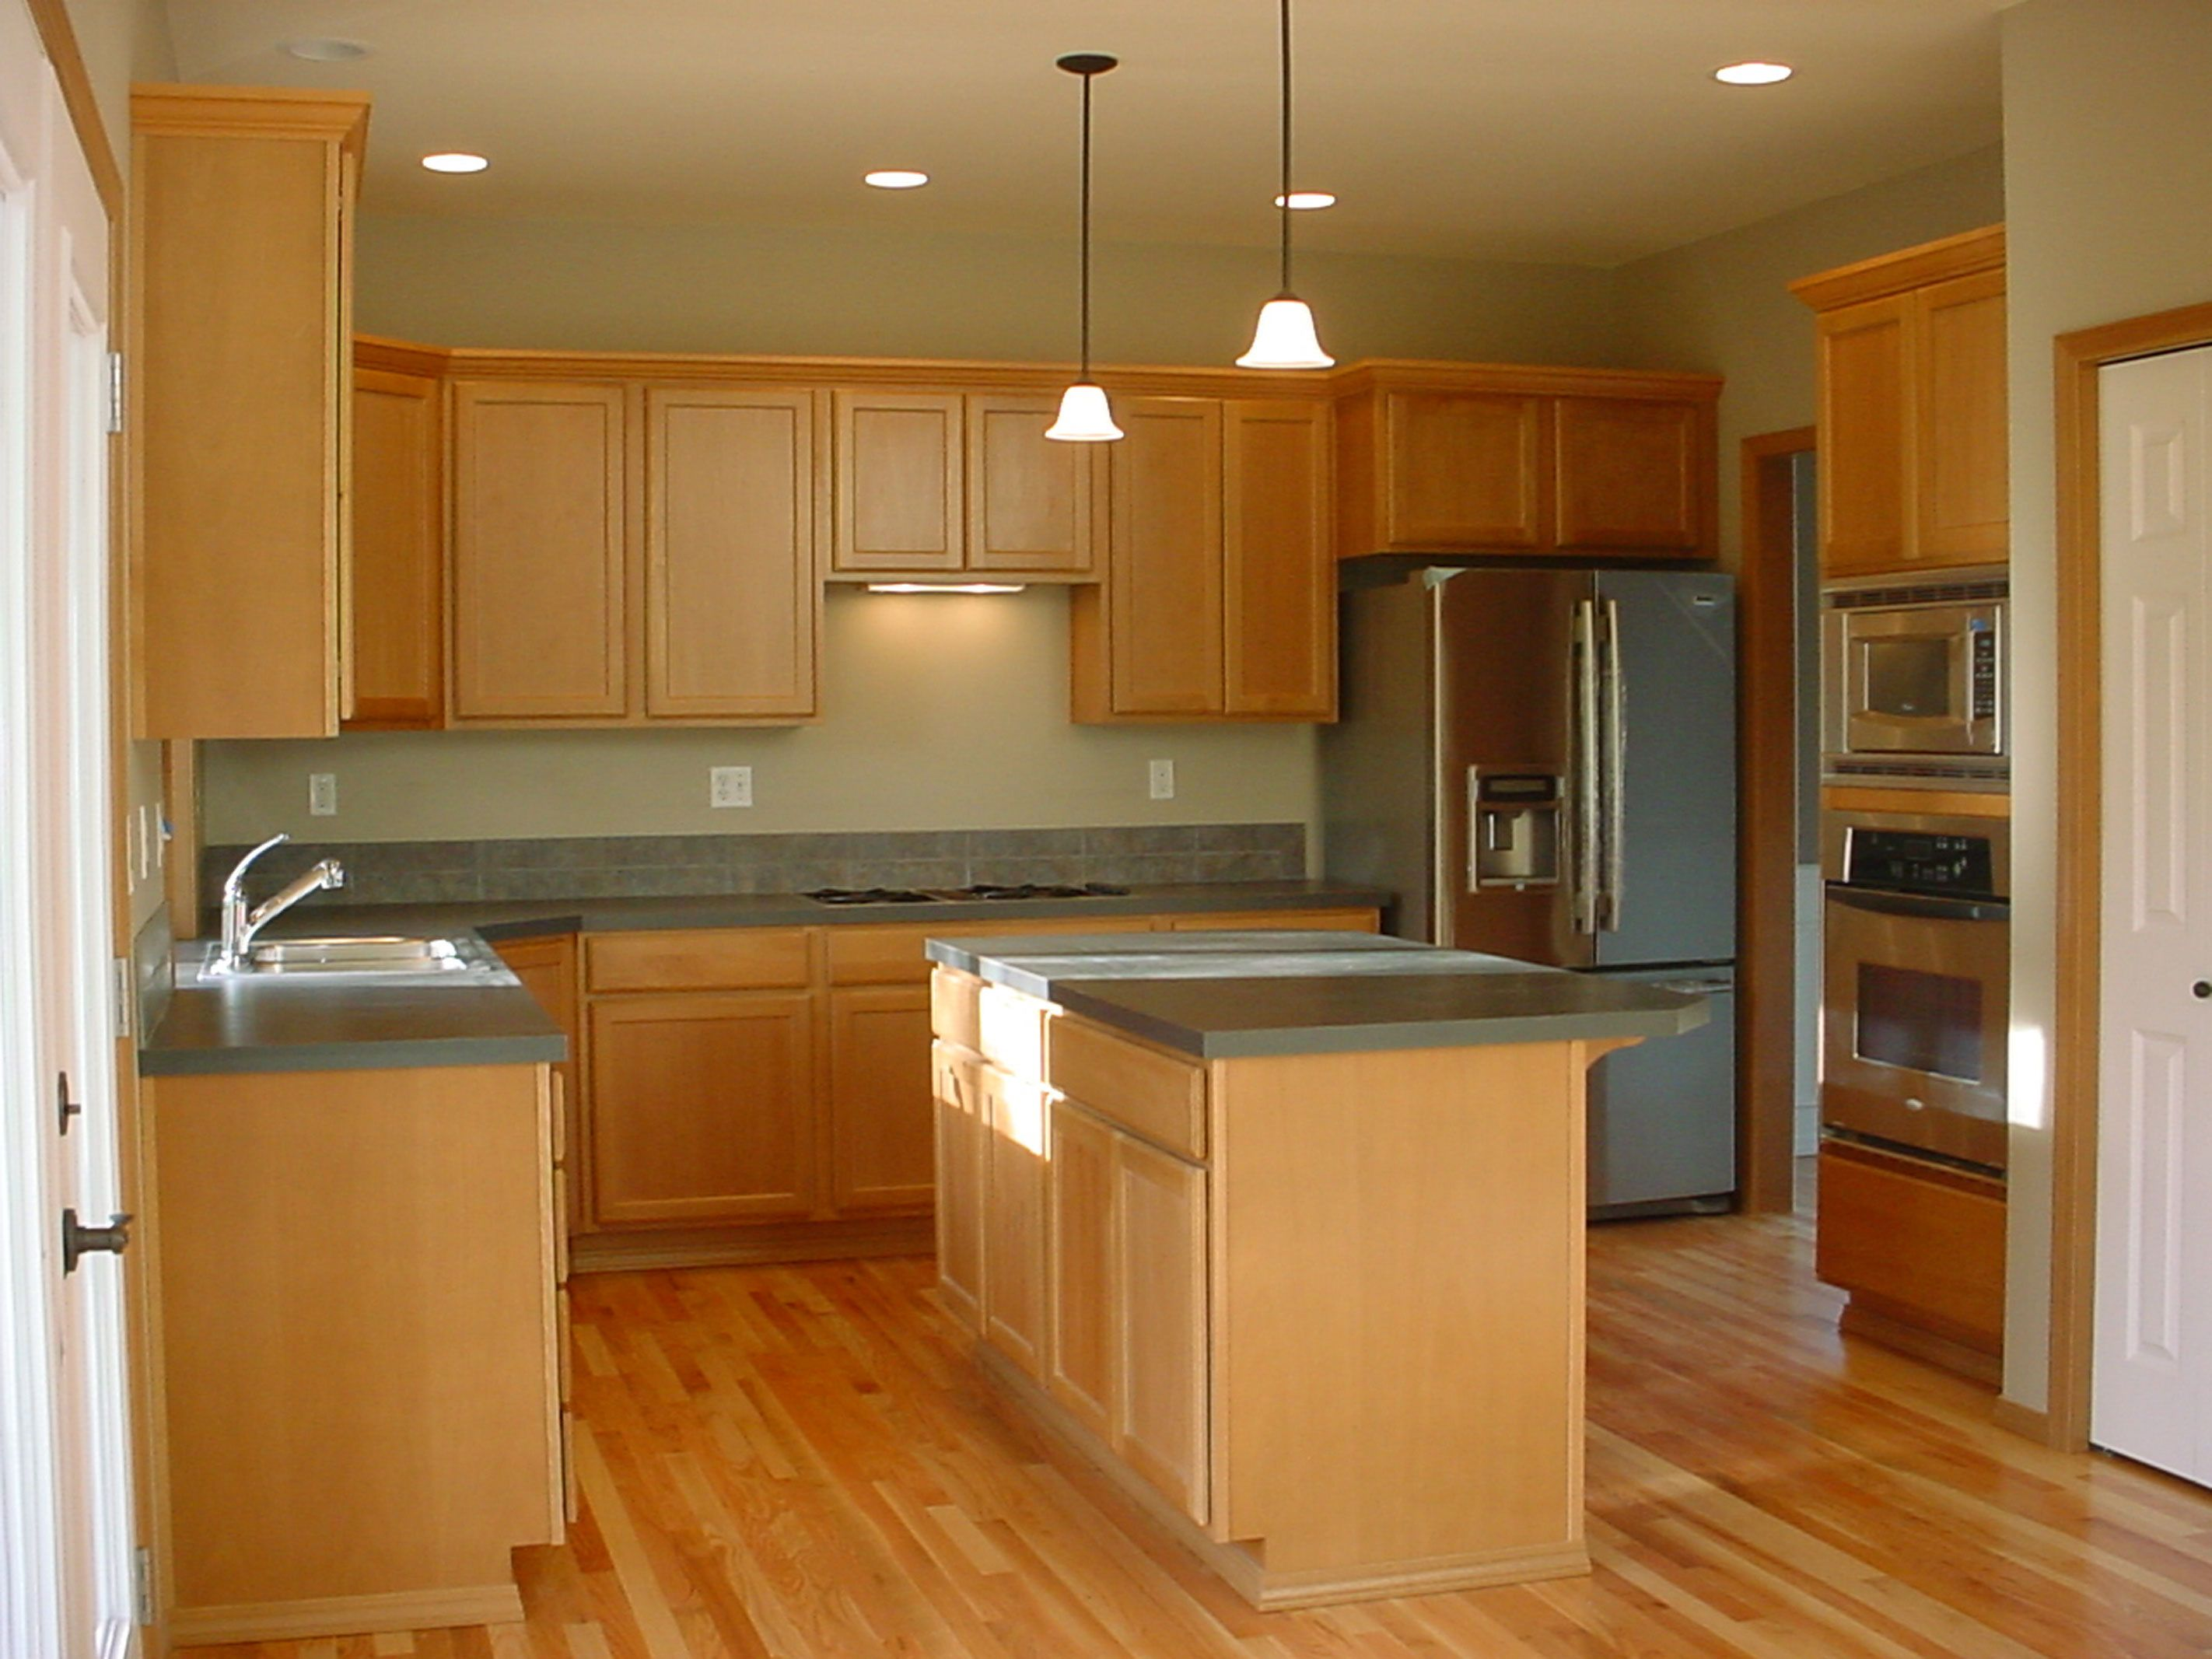 images about home improvement ideas on pinterest the roof columns and home depot kitchen: kitchen moldings